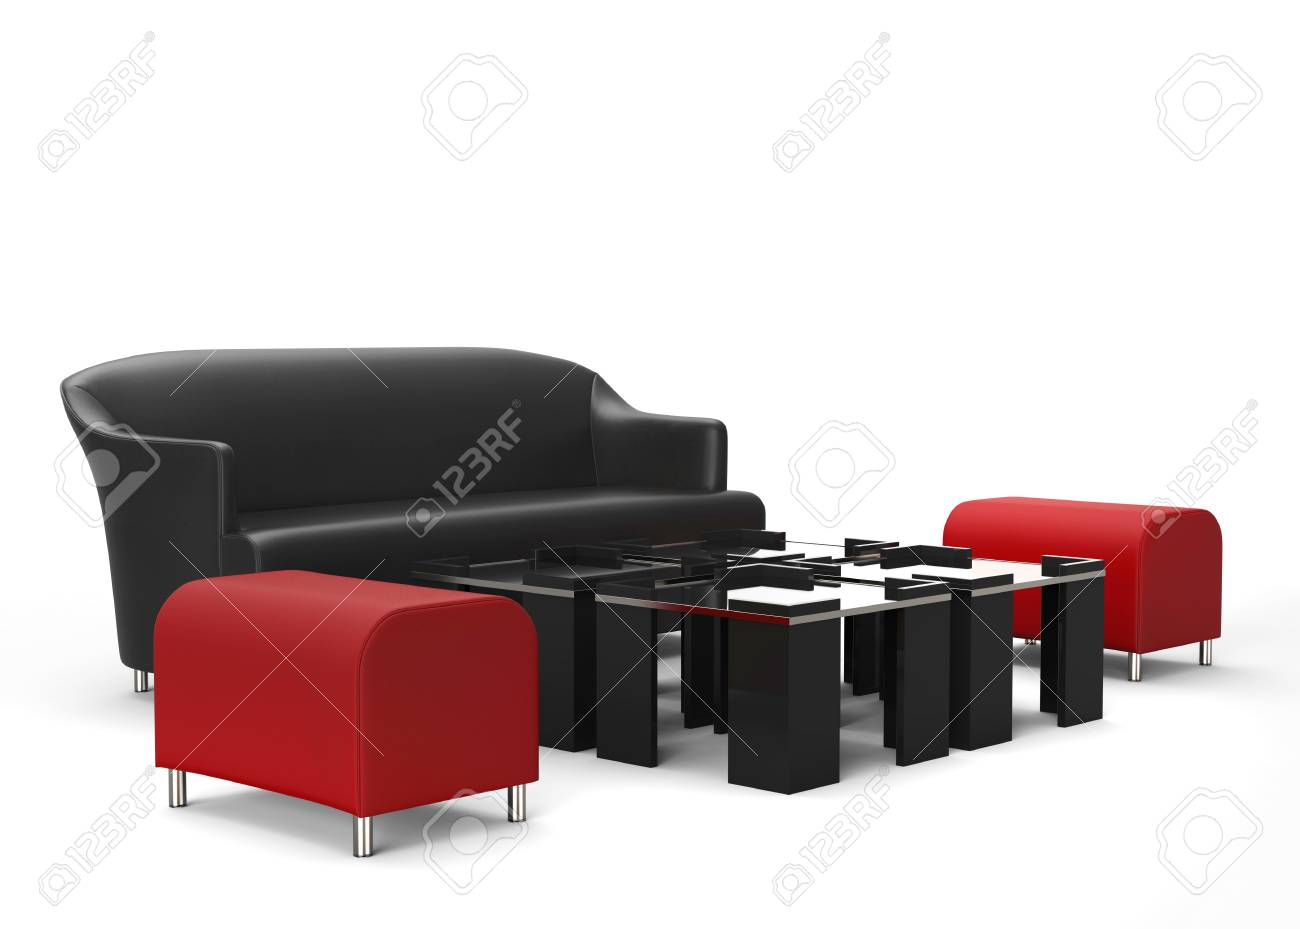 Living Room Furniture Set Red Ottomans In Focus Isolated